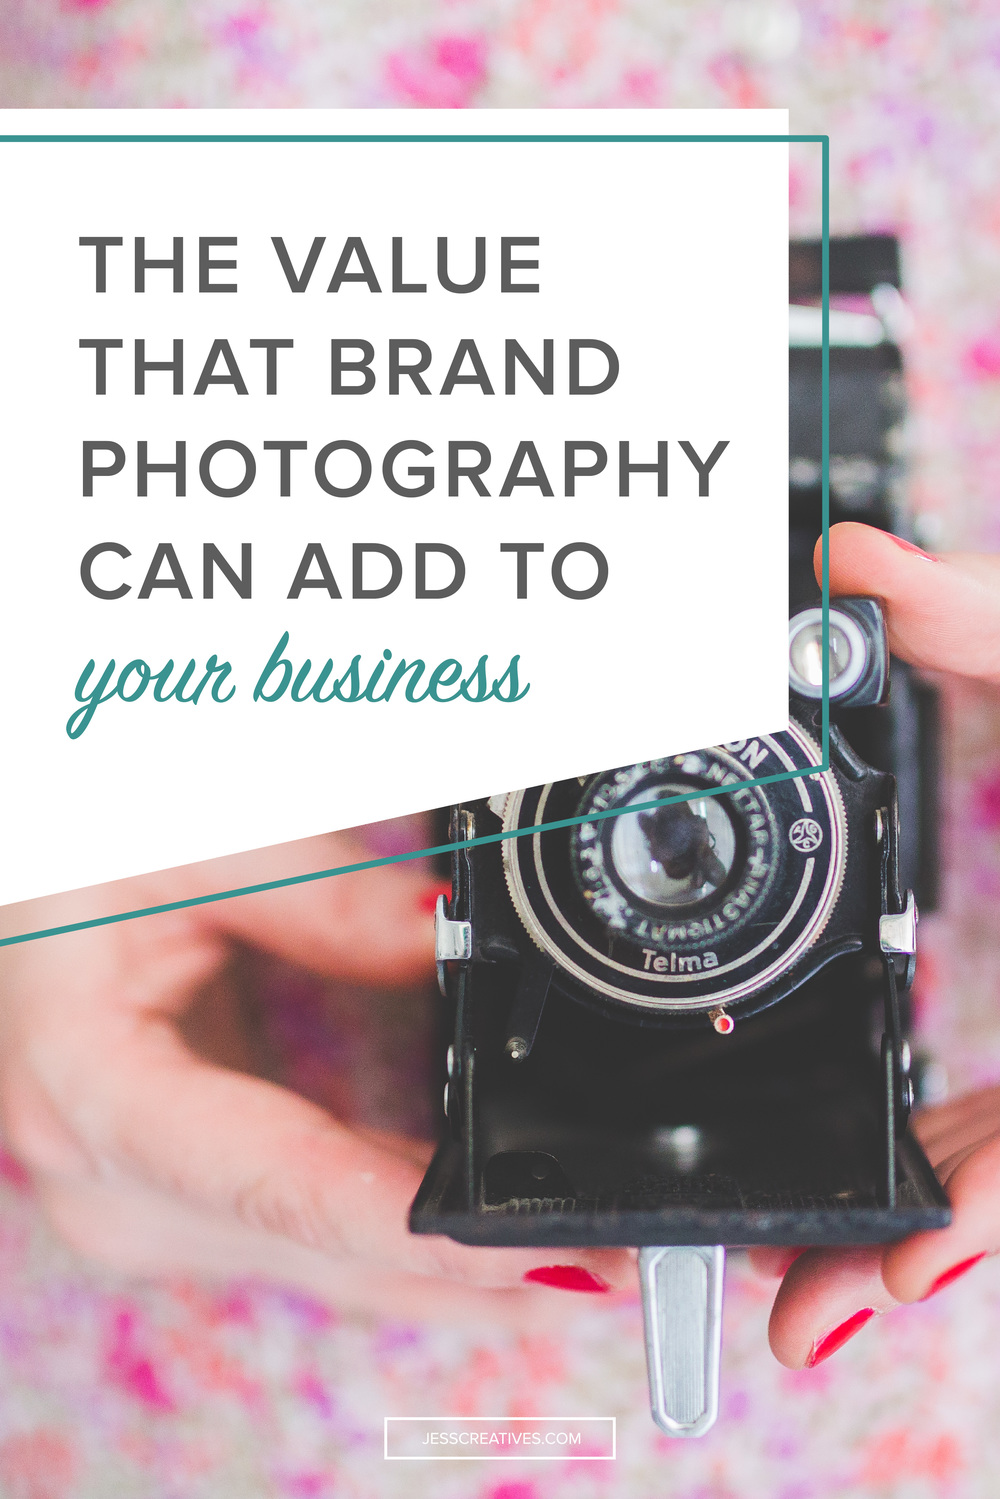 Styled images created for your brand allow you to control the quality, and consistency of your brand, shows your professionalism, and leaves your clients confident in their investment.